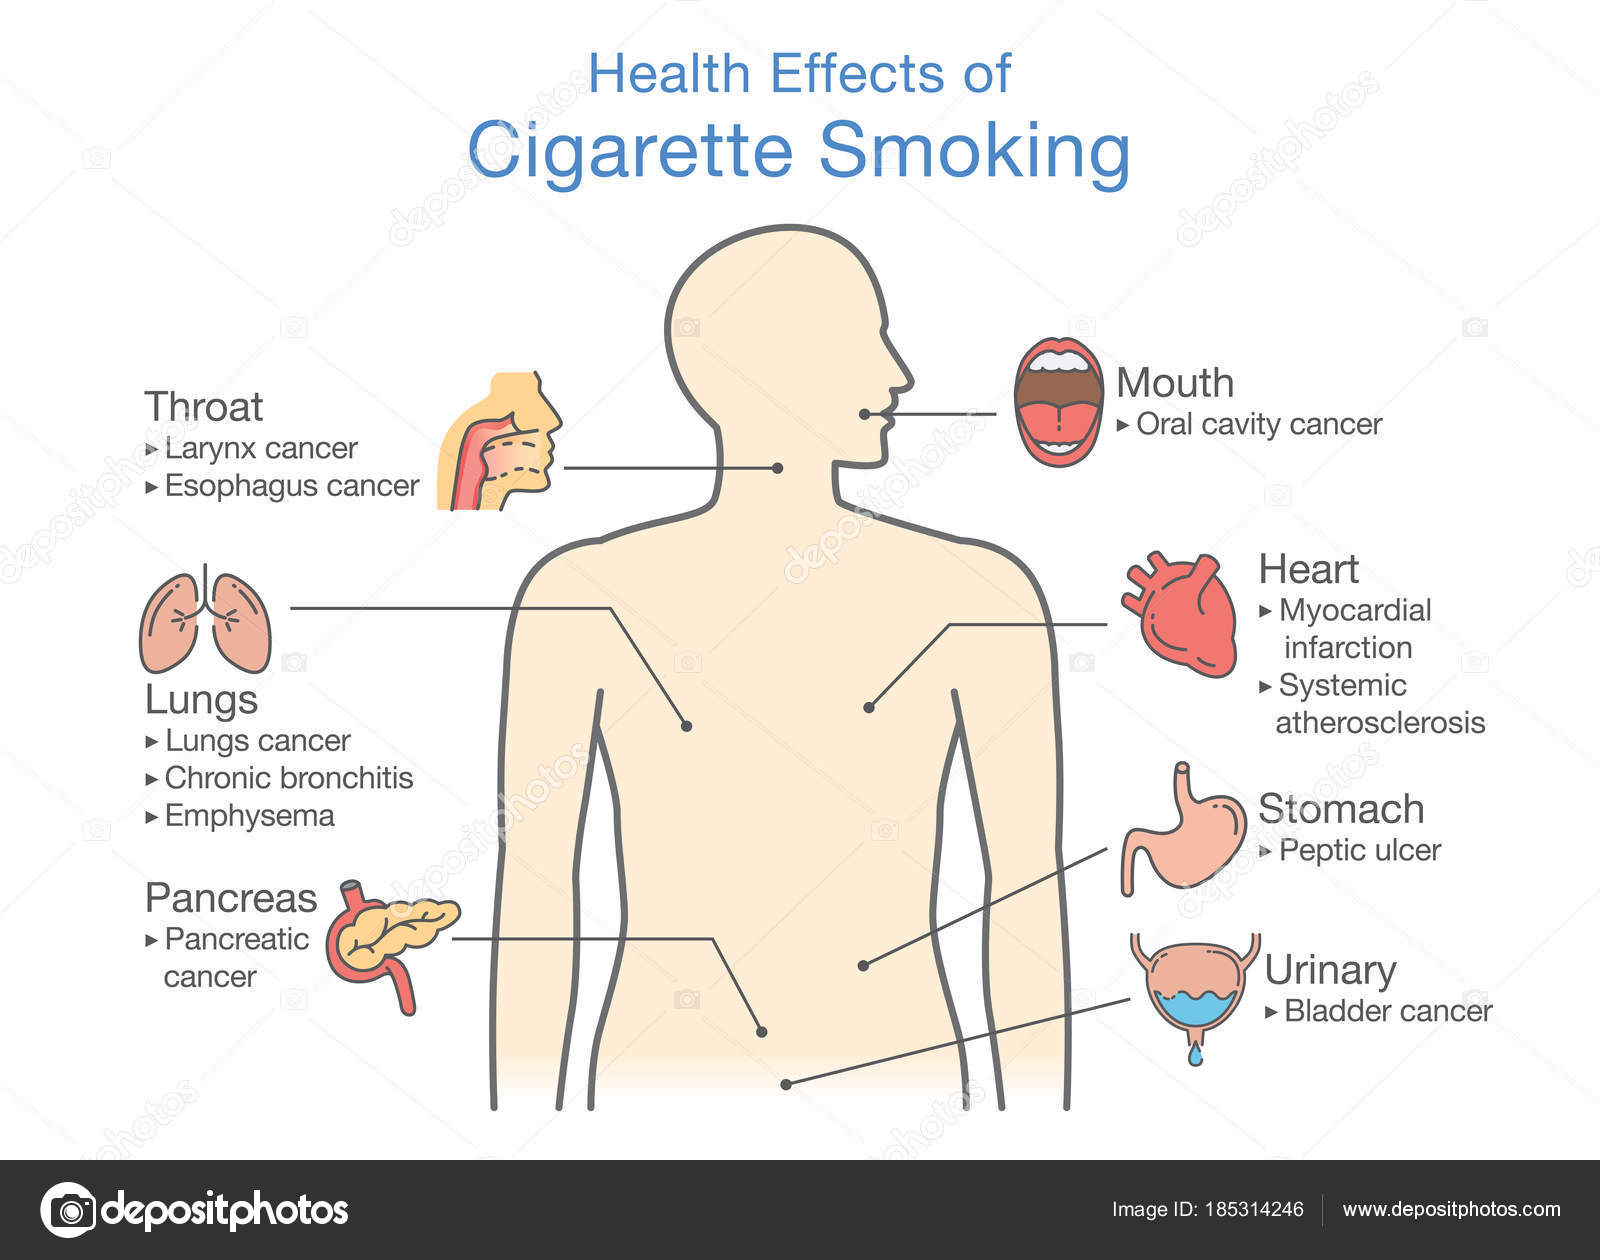 diagram about health effect of cigarette smoking  illustration about risk  of smokers – stock illustration